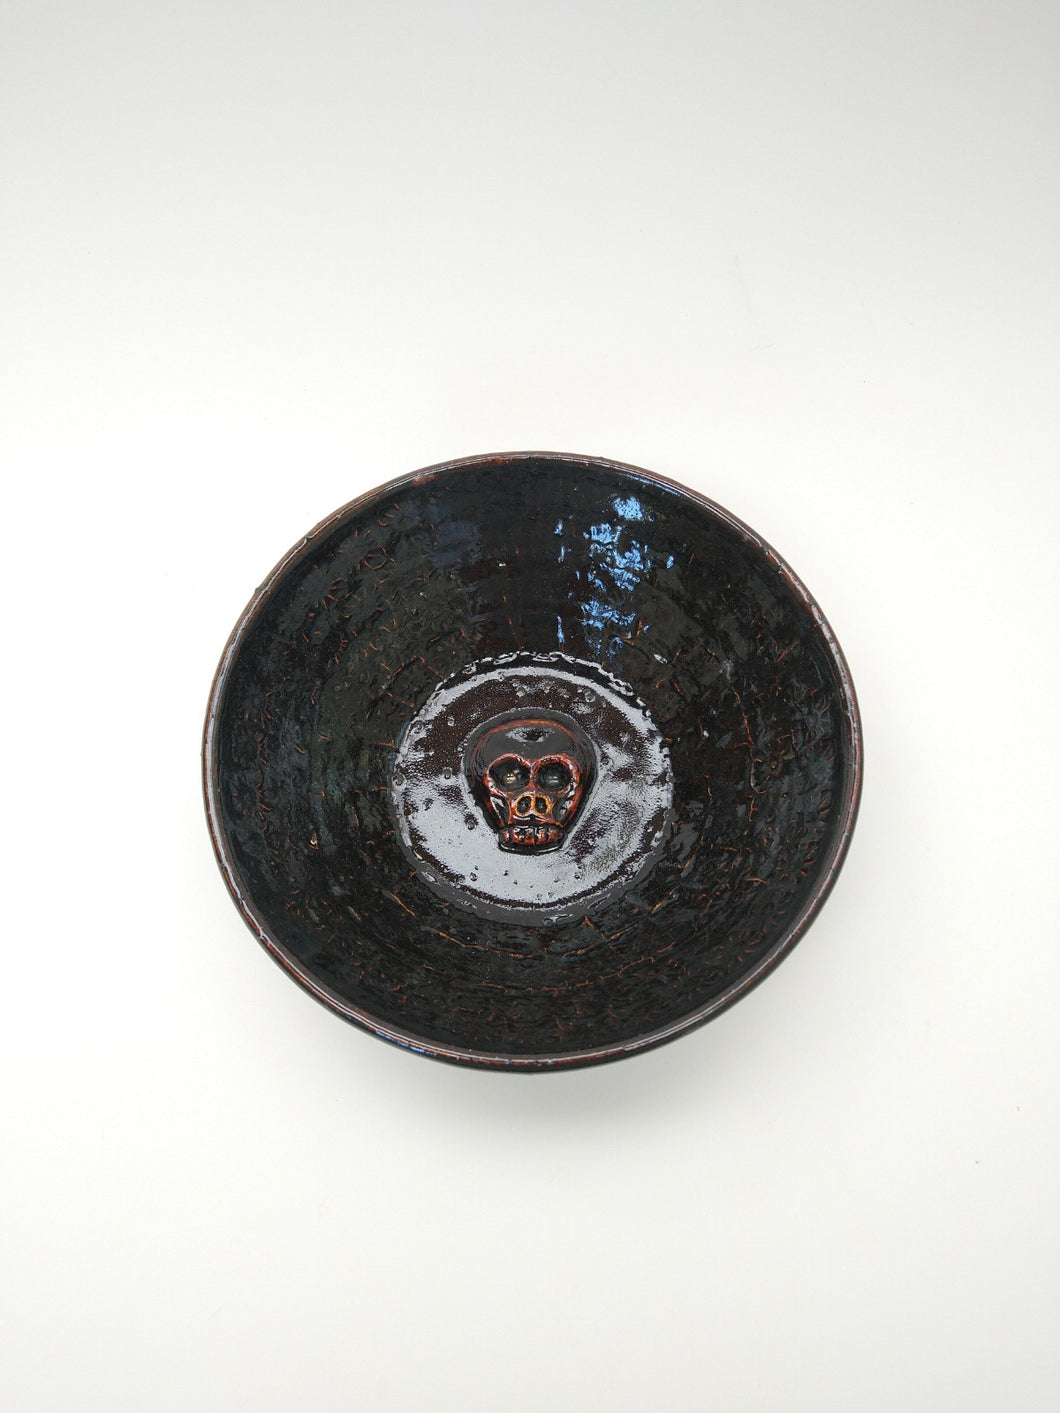 Lowrider Skull Bowl with Molasses Glaze